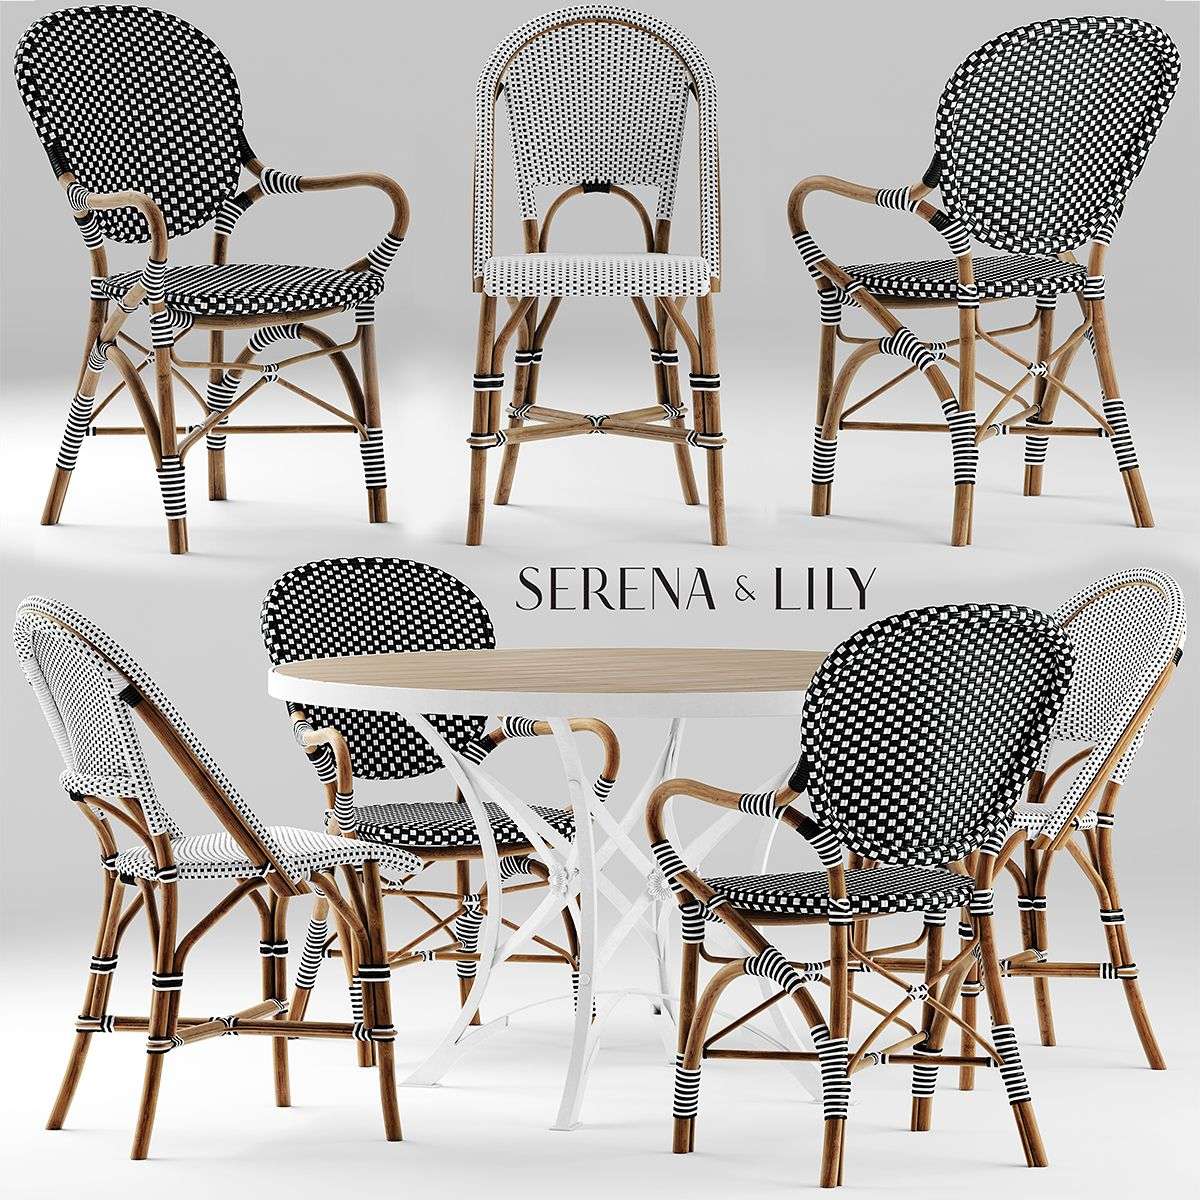 3D serena and lily chair Chair, Table and chairs, Dining